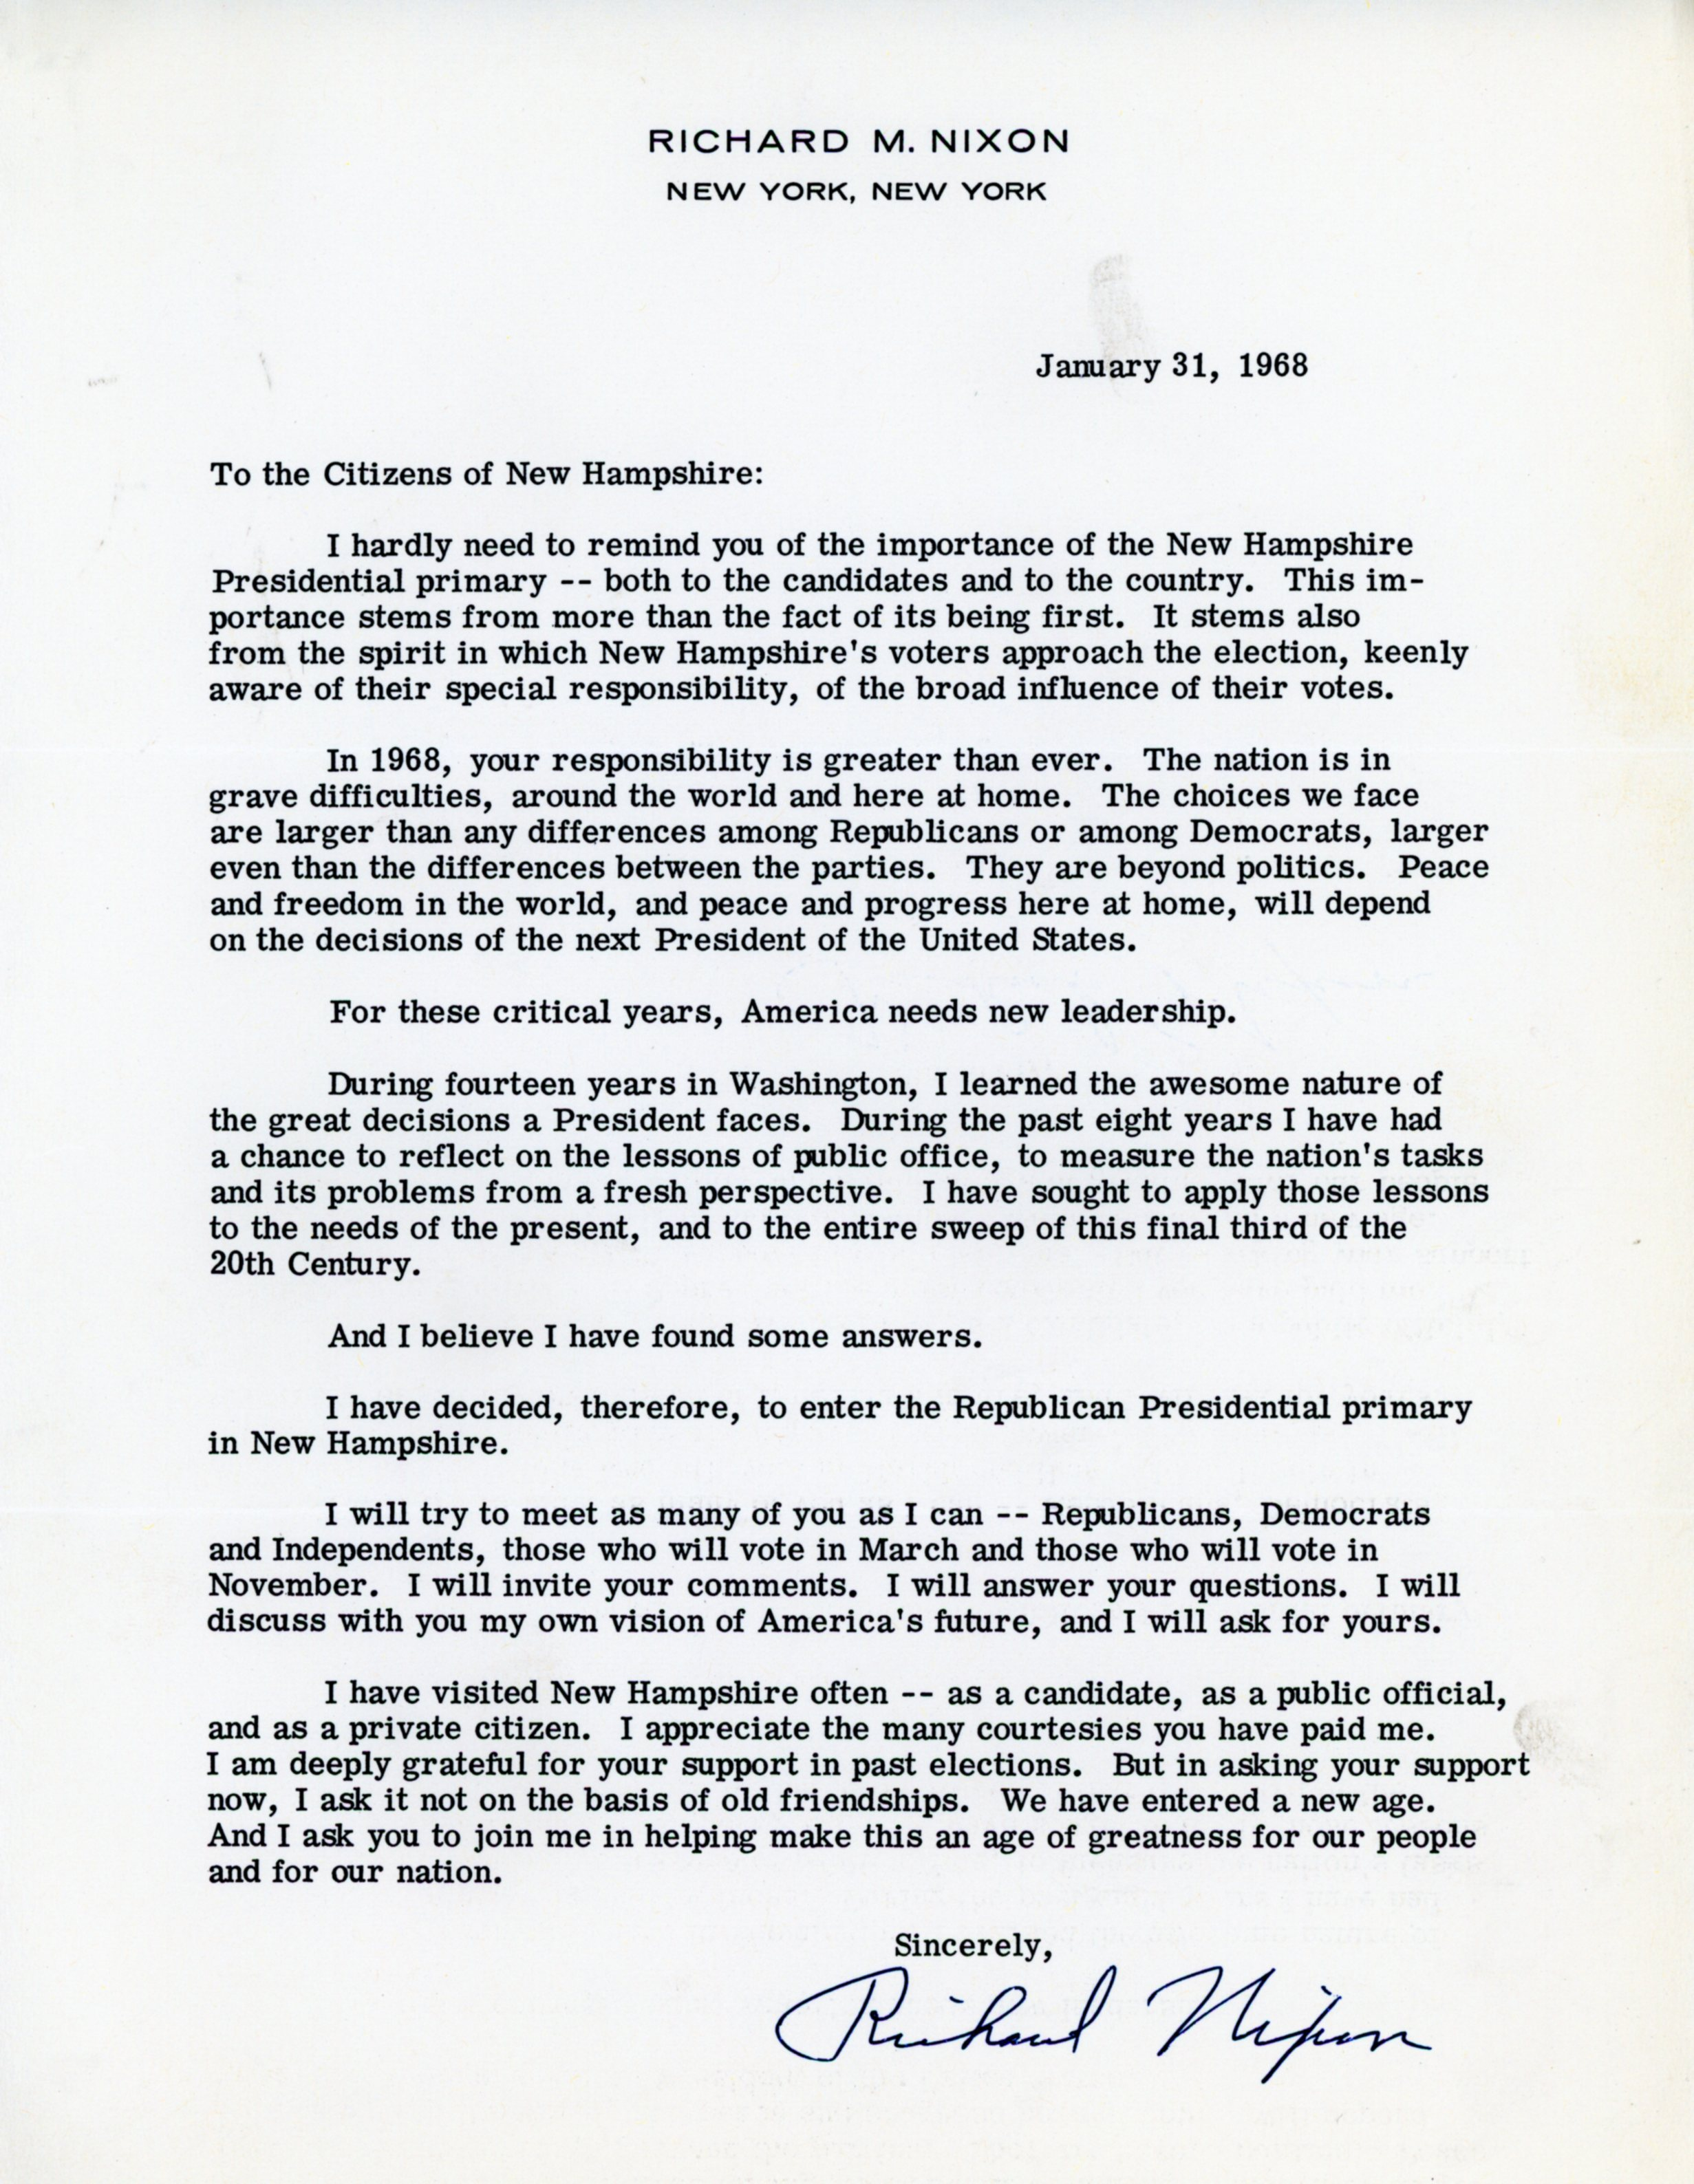 Richard Nixon's letter to New Hampshire